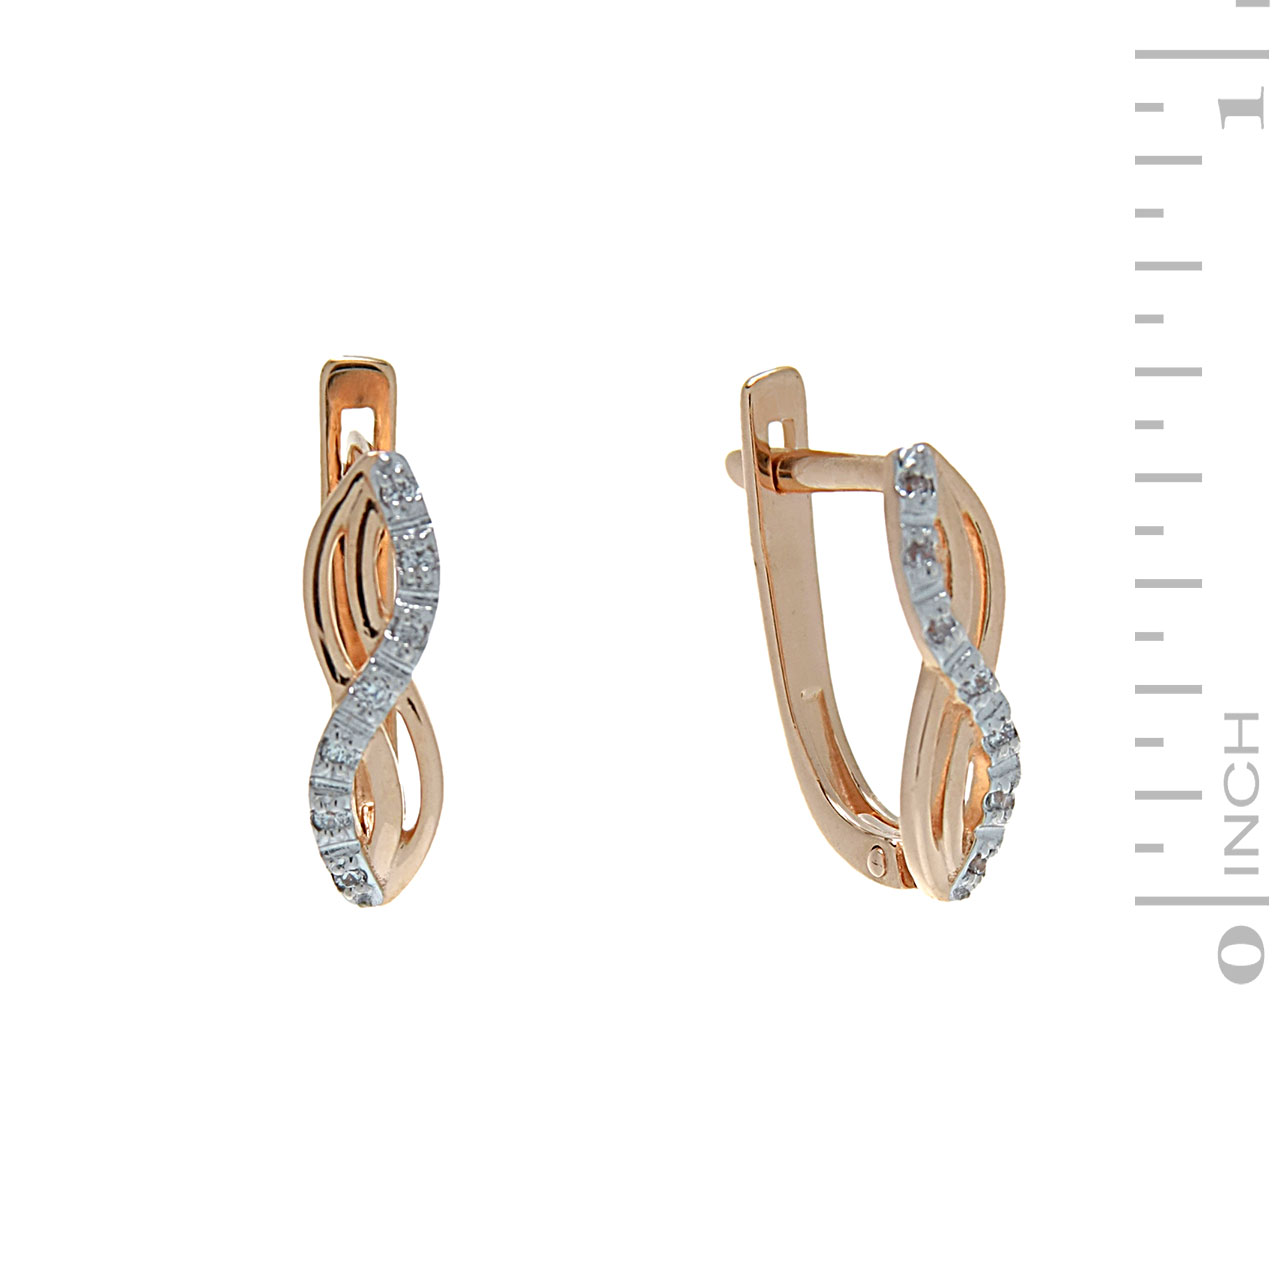 Infinity earrings 1